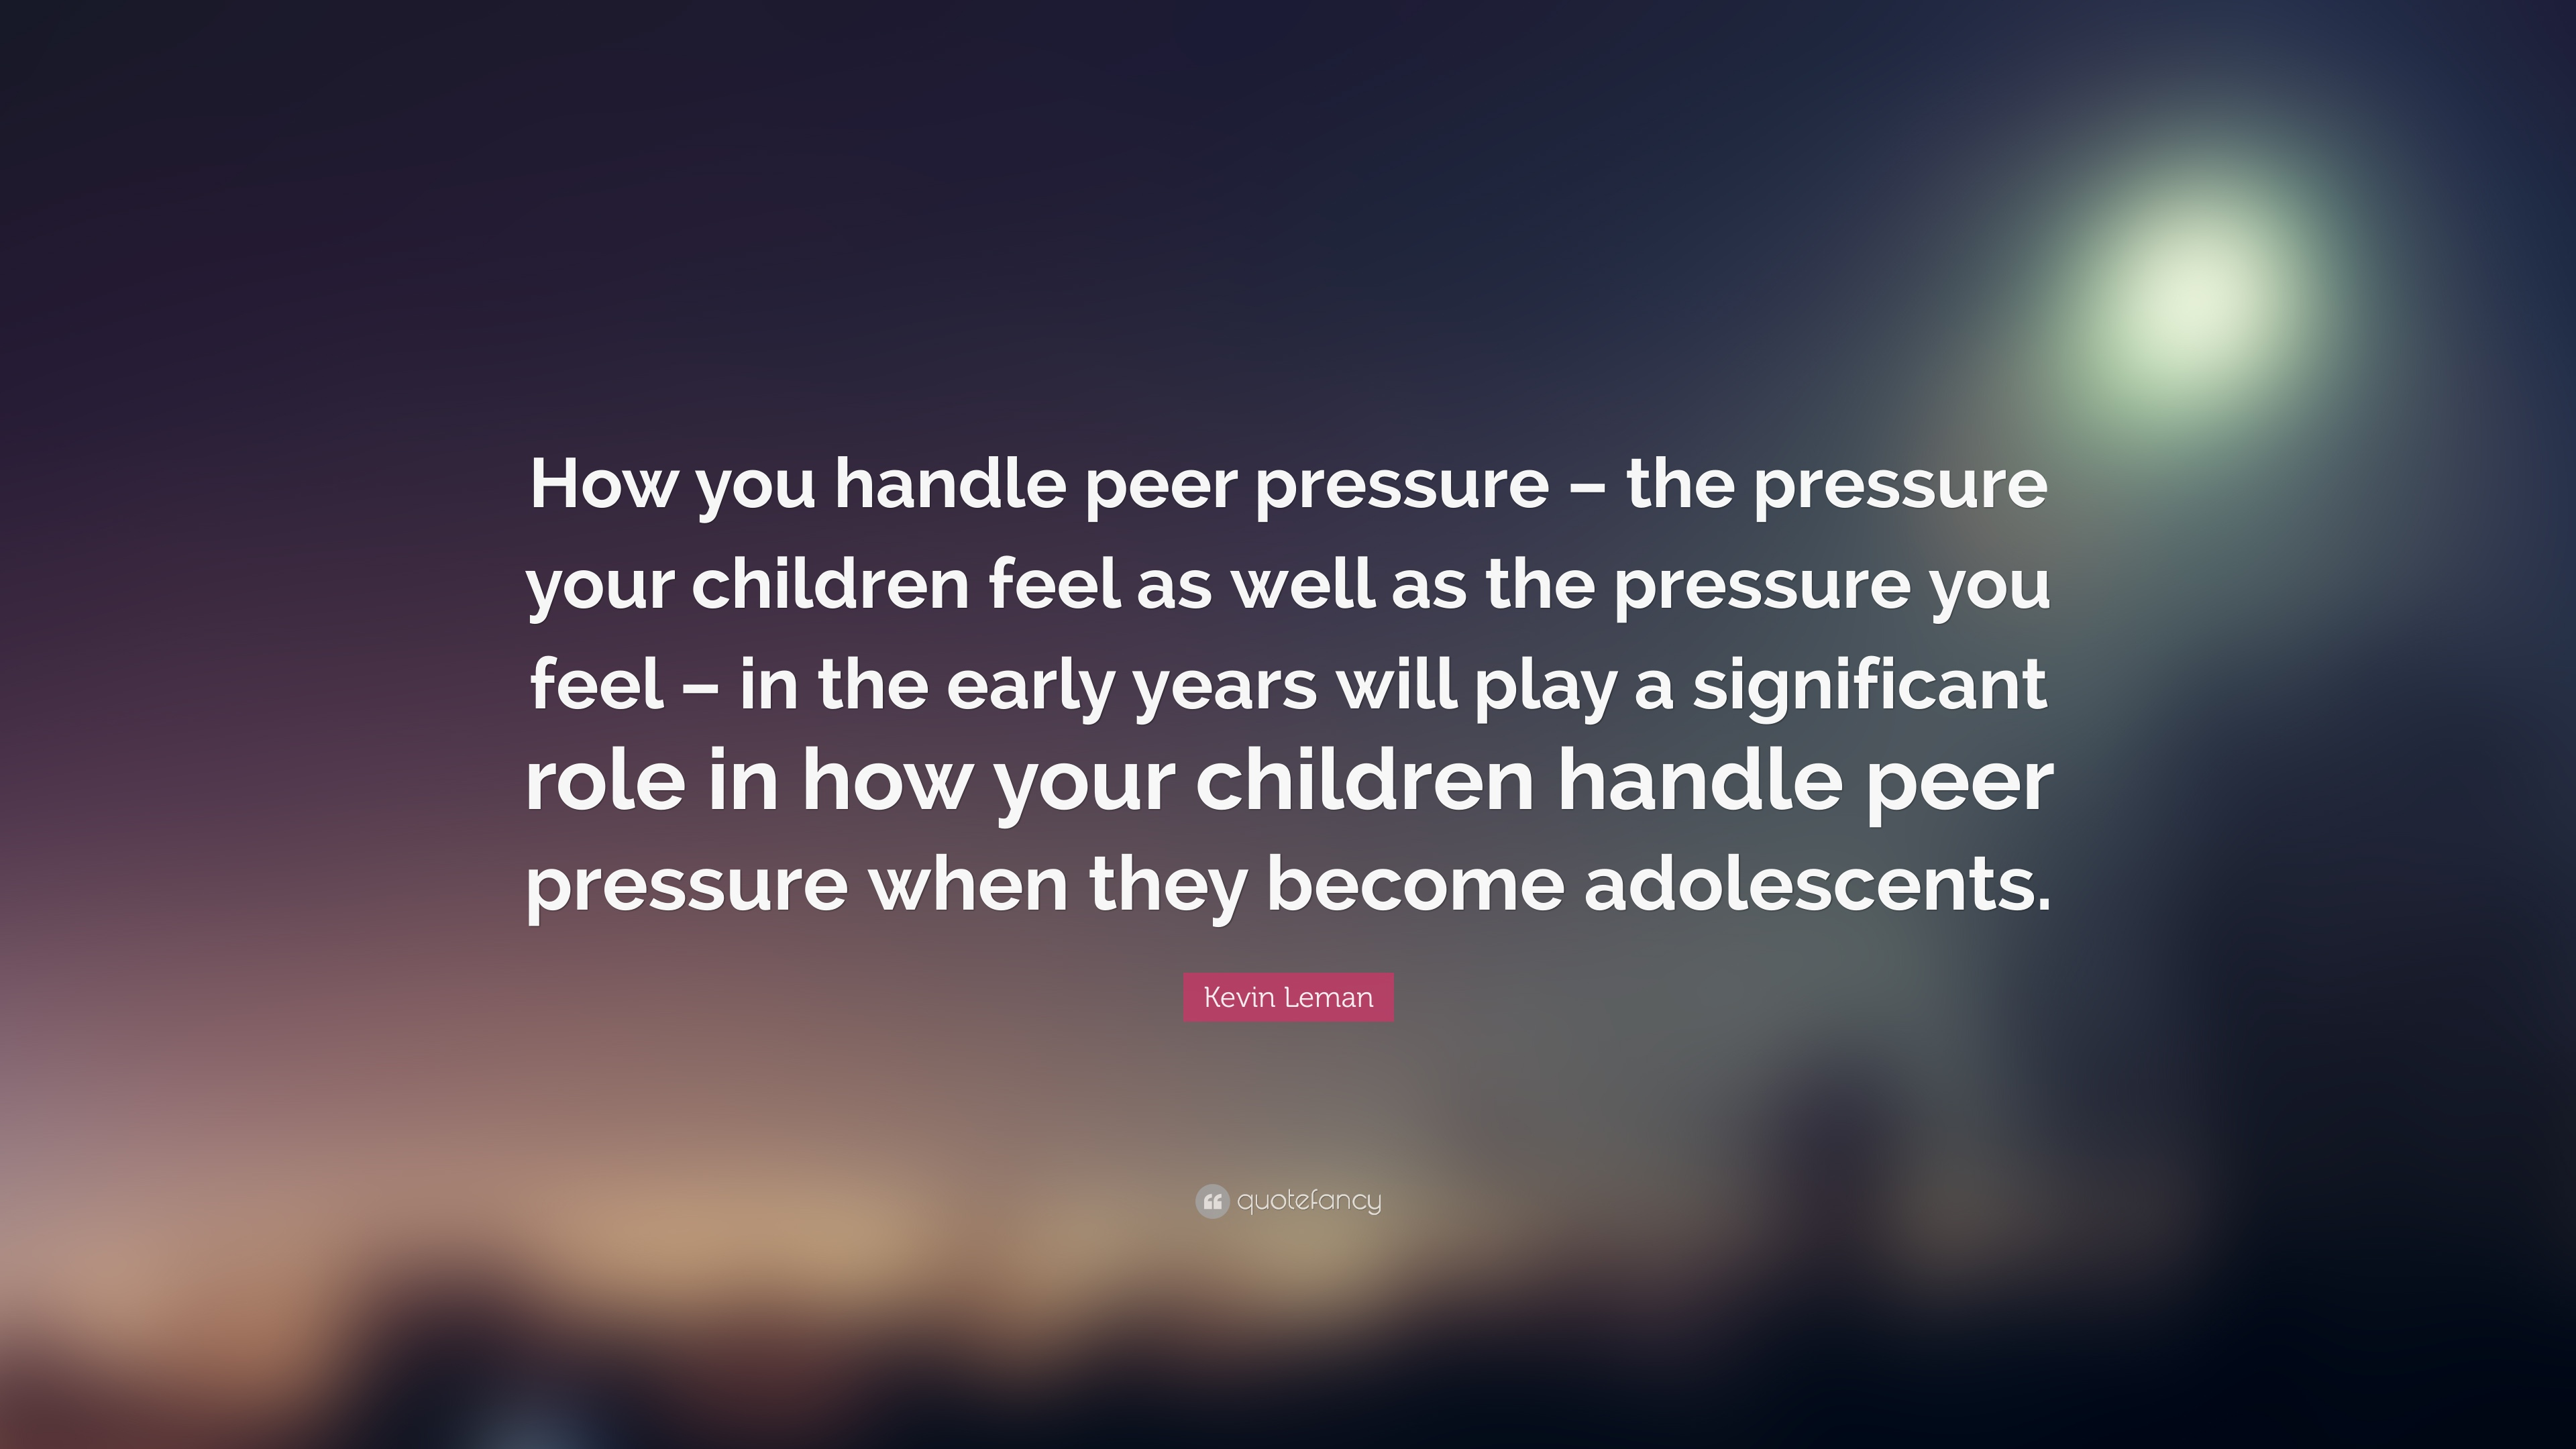 kevin leman quote how you handle peer pressure the pressure kevin leman quote how you handle peer pressure the pressure your children feel